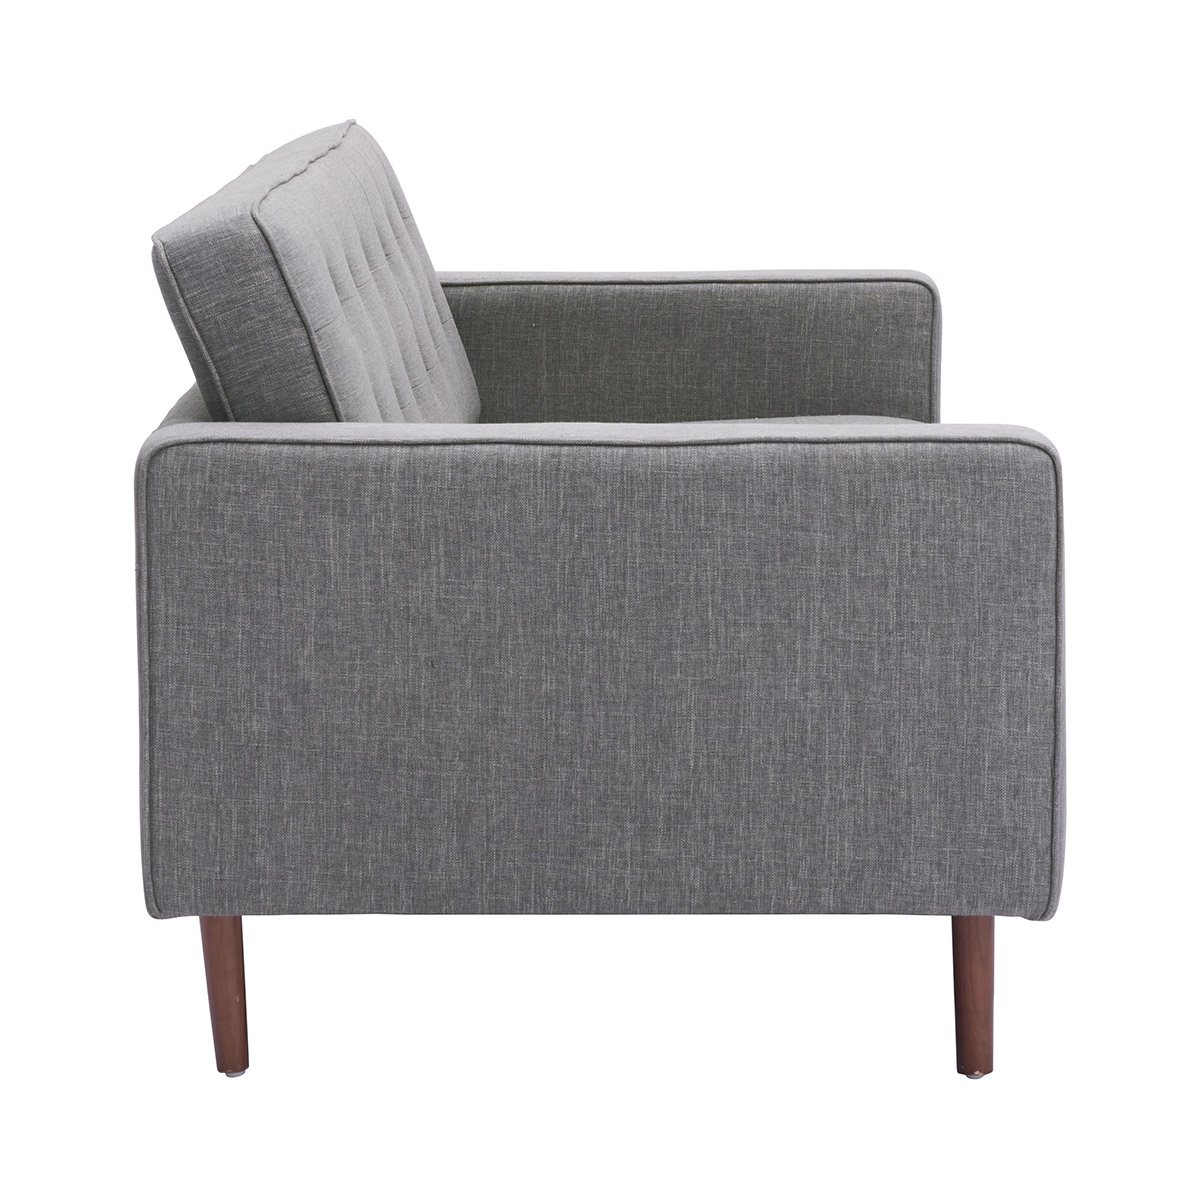 Stupendous Zuo Puget Sofa In Gray Andrewgaddart Wooden Chair Designs For Living Room Andrewgaddartcom